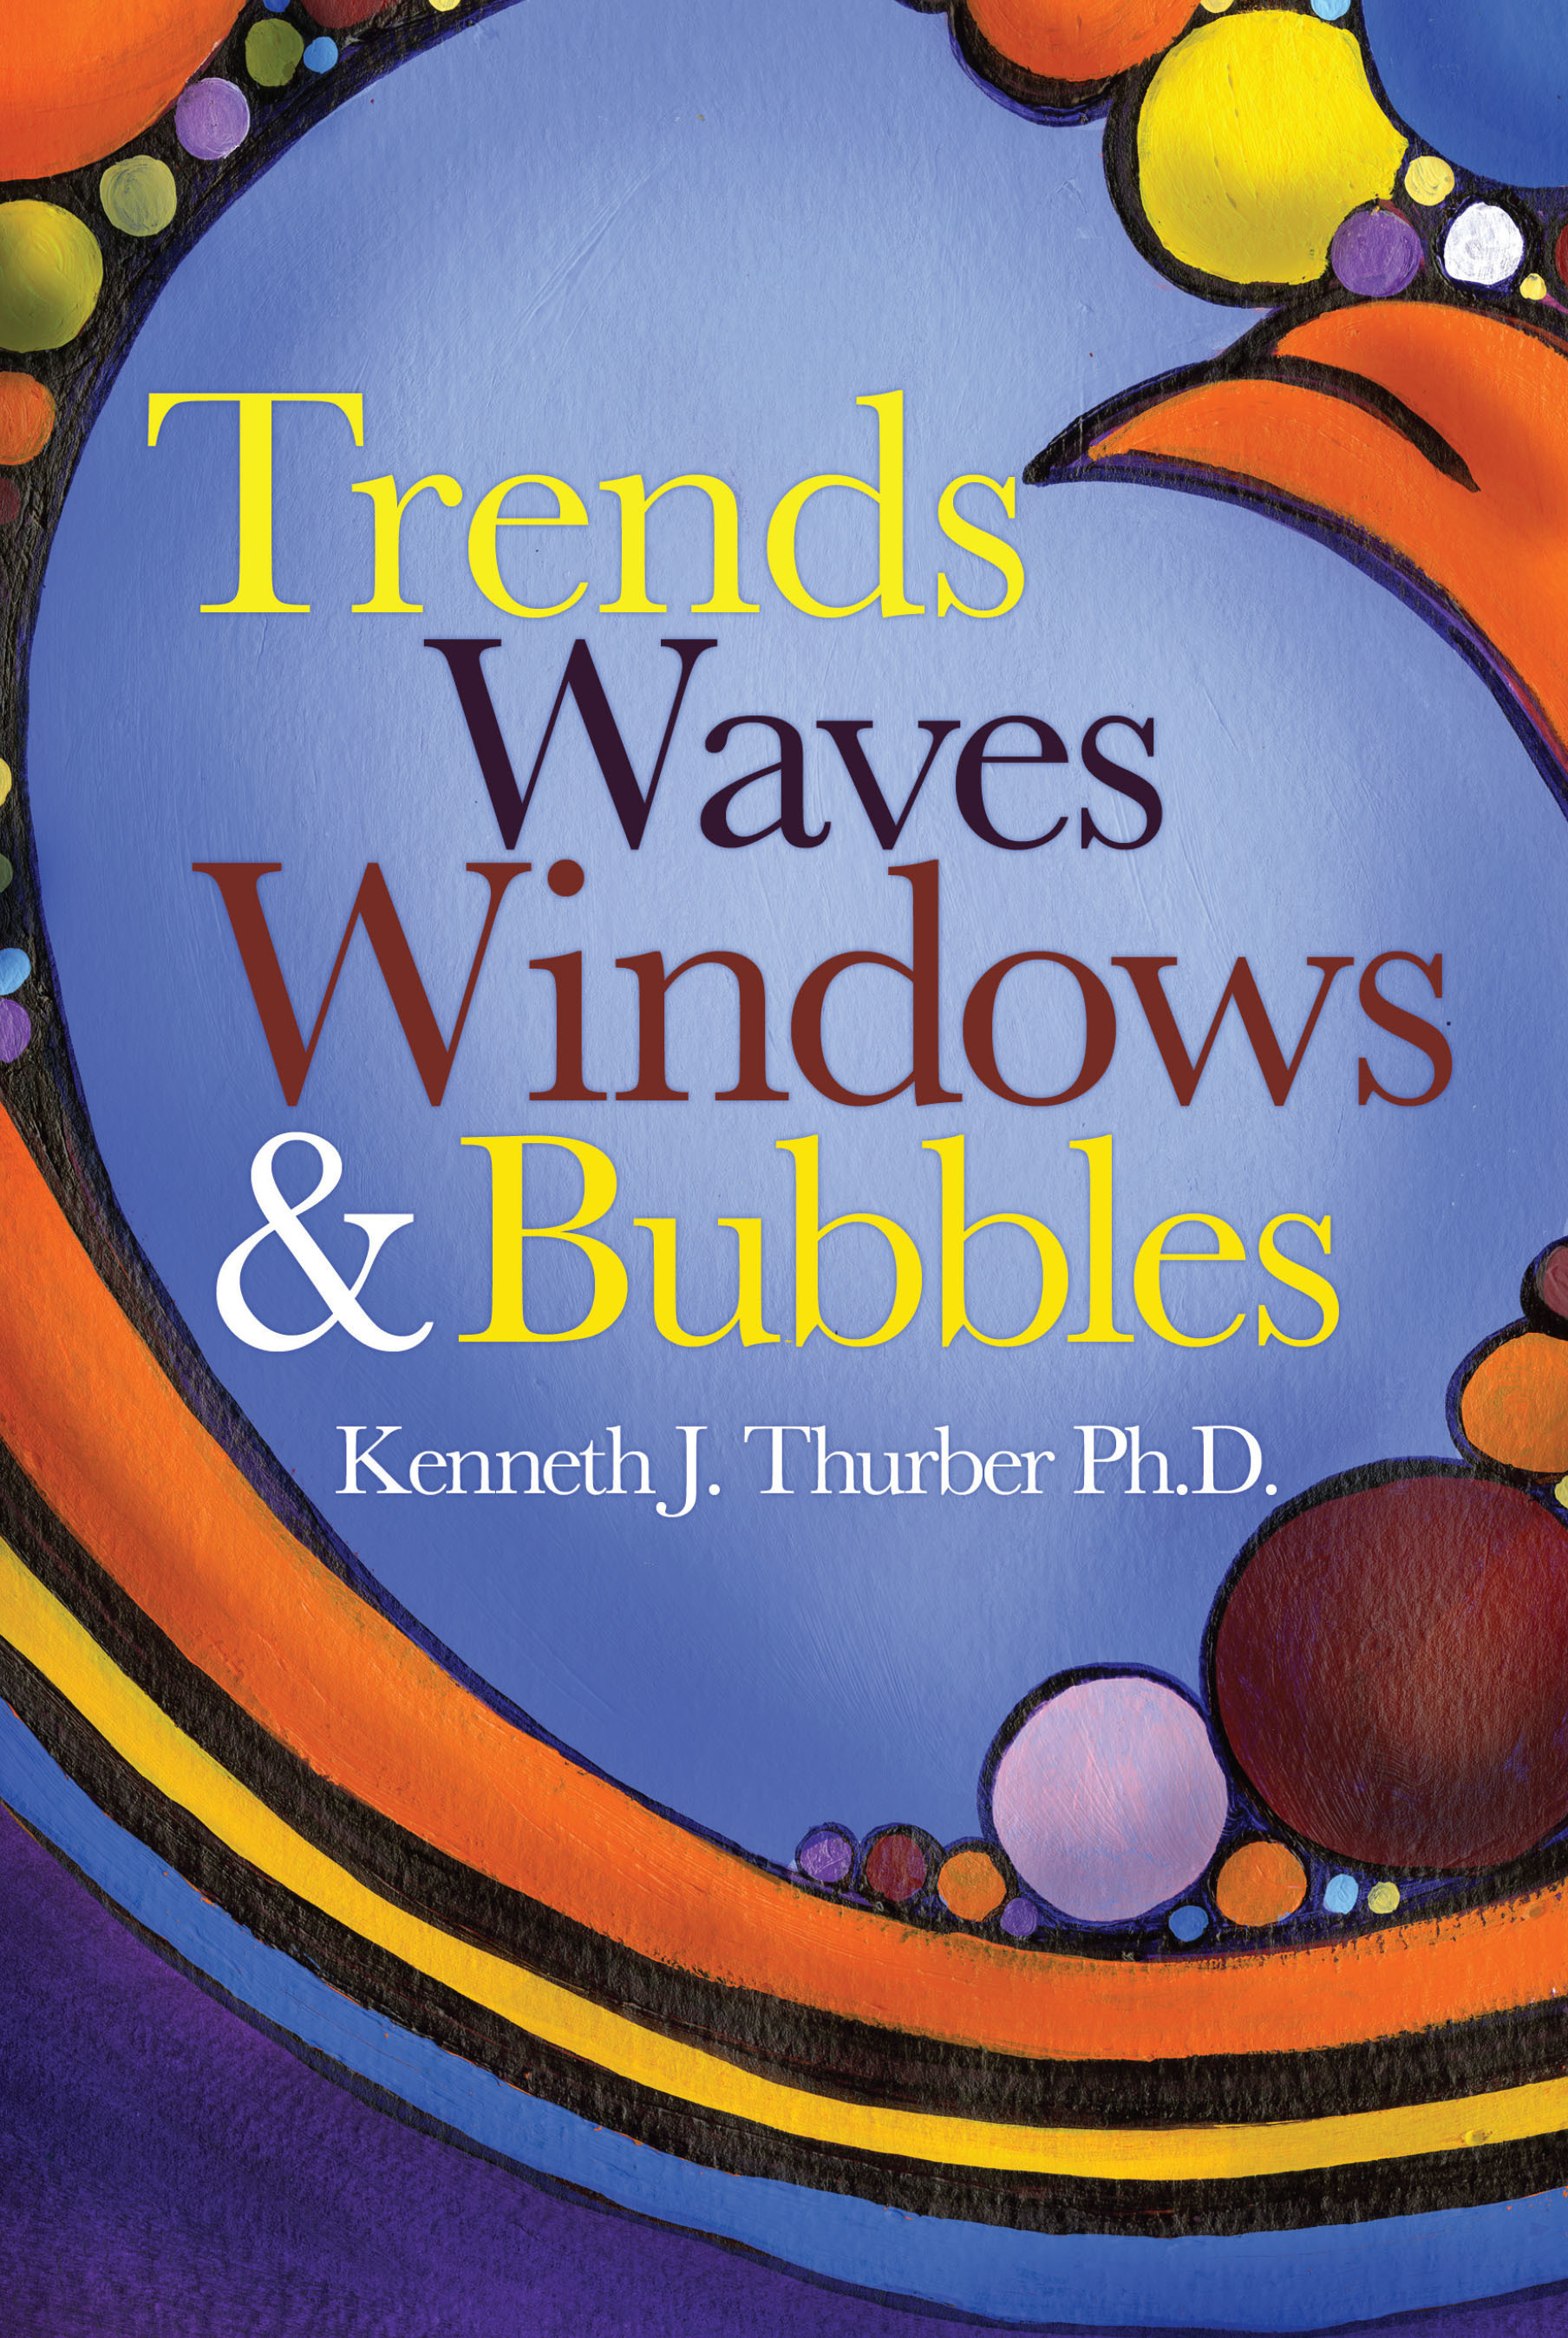 Kenneth J. Thurber, Ph.D. Wins Awards for Latest Book